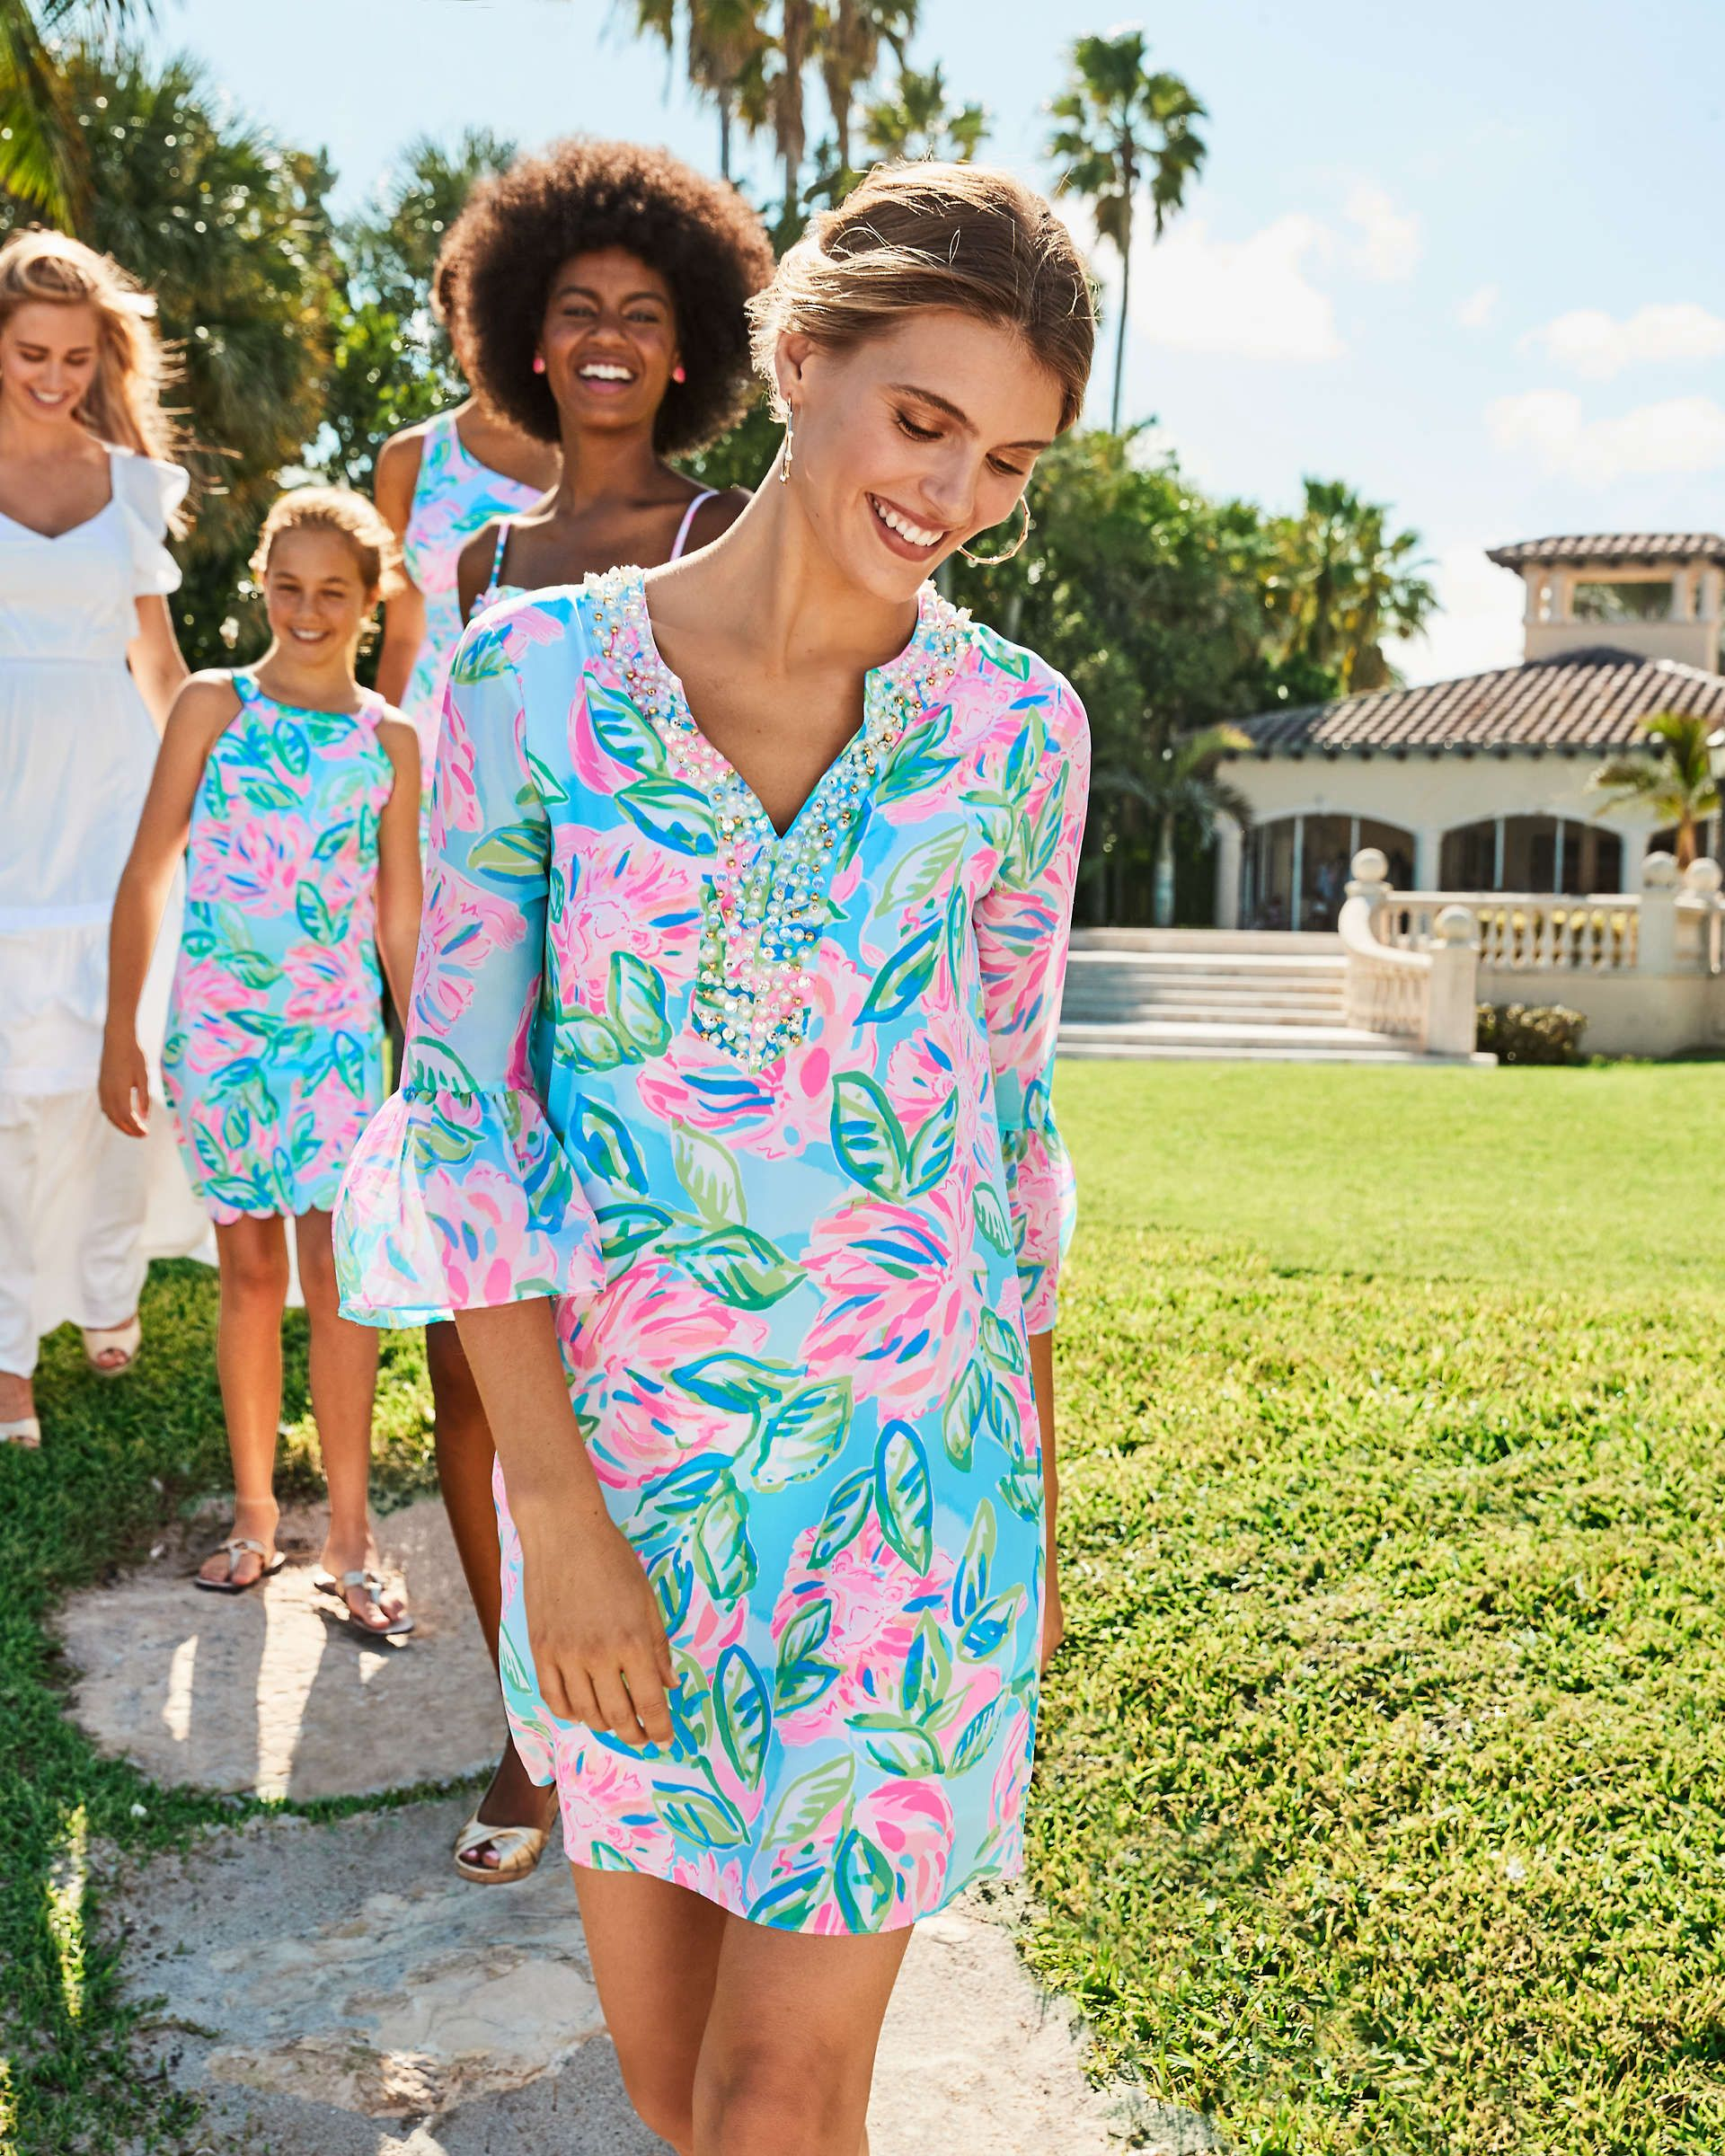 36+ Lilly pulitzer dress ideas in 2021